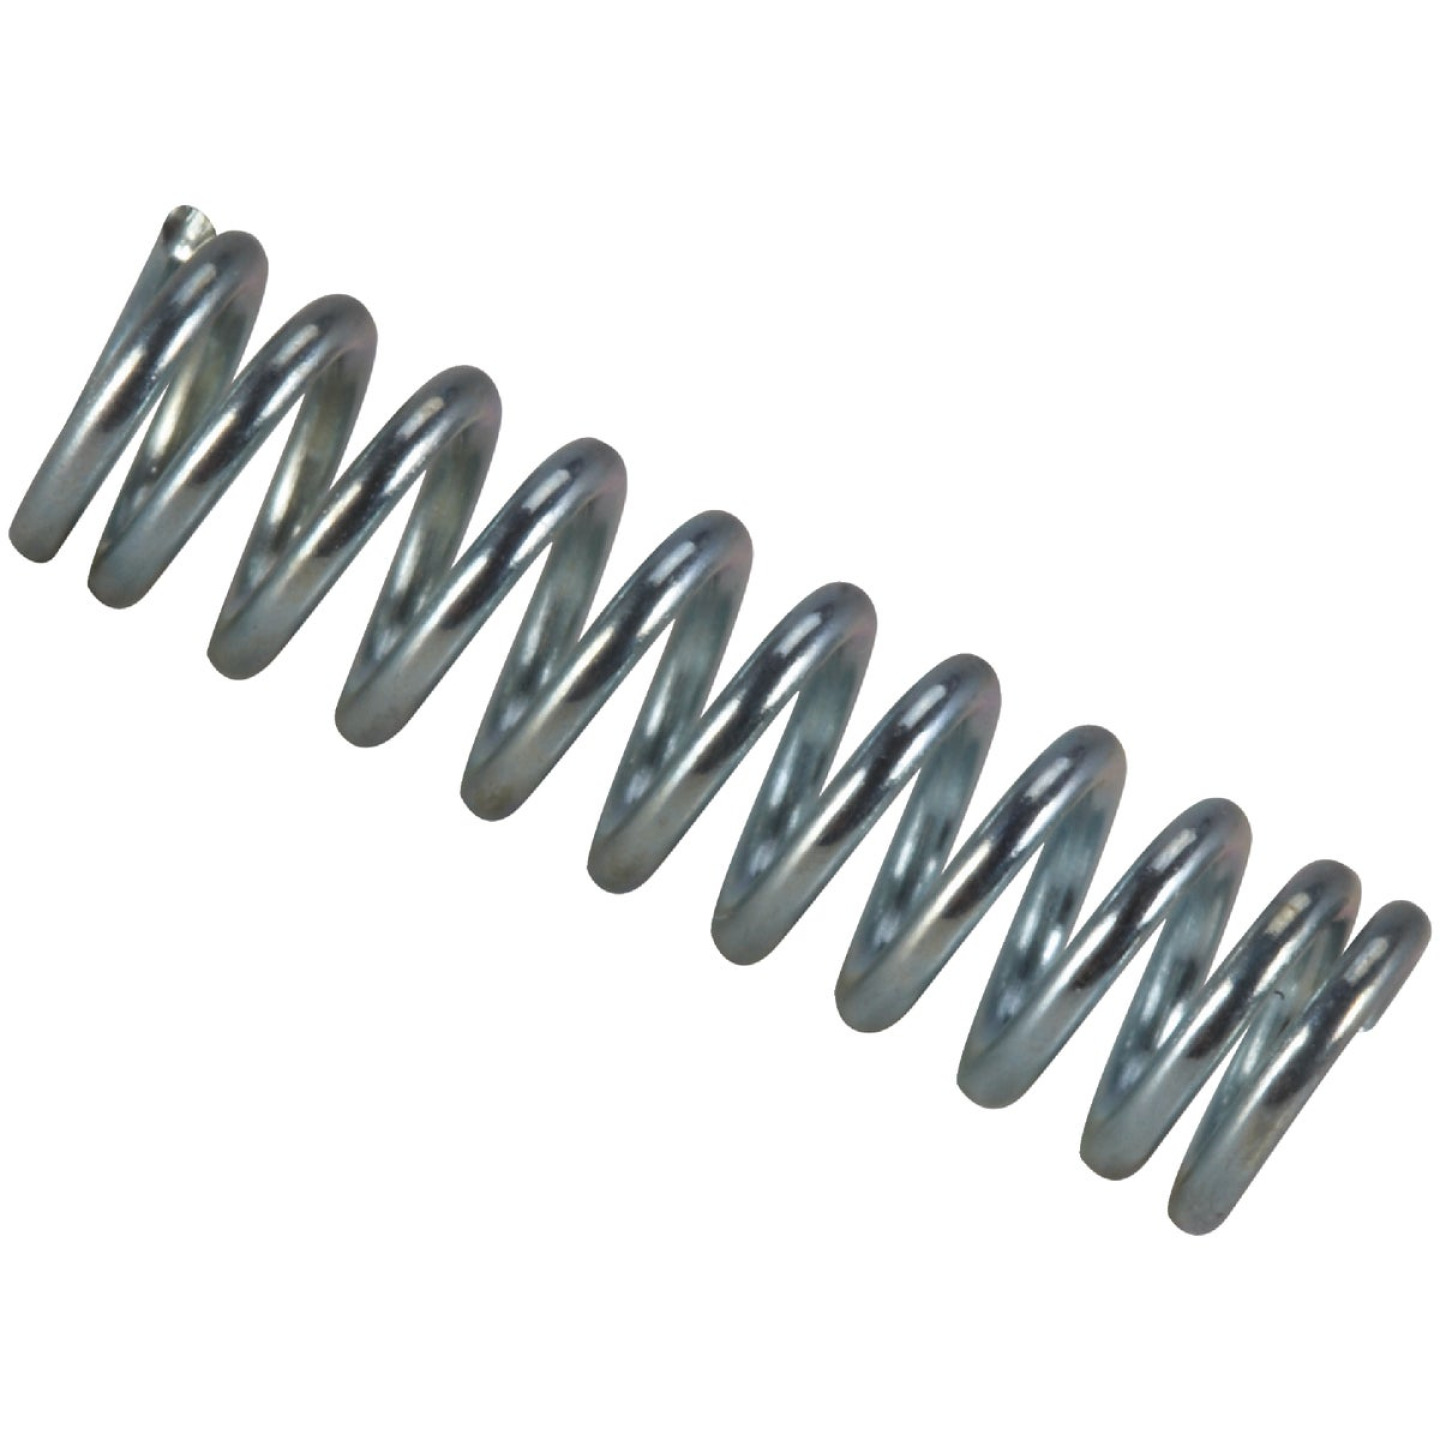 Century Spring 3-1/2 In. x 1 In. Compression Spring (2 Count) Image 1